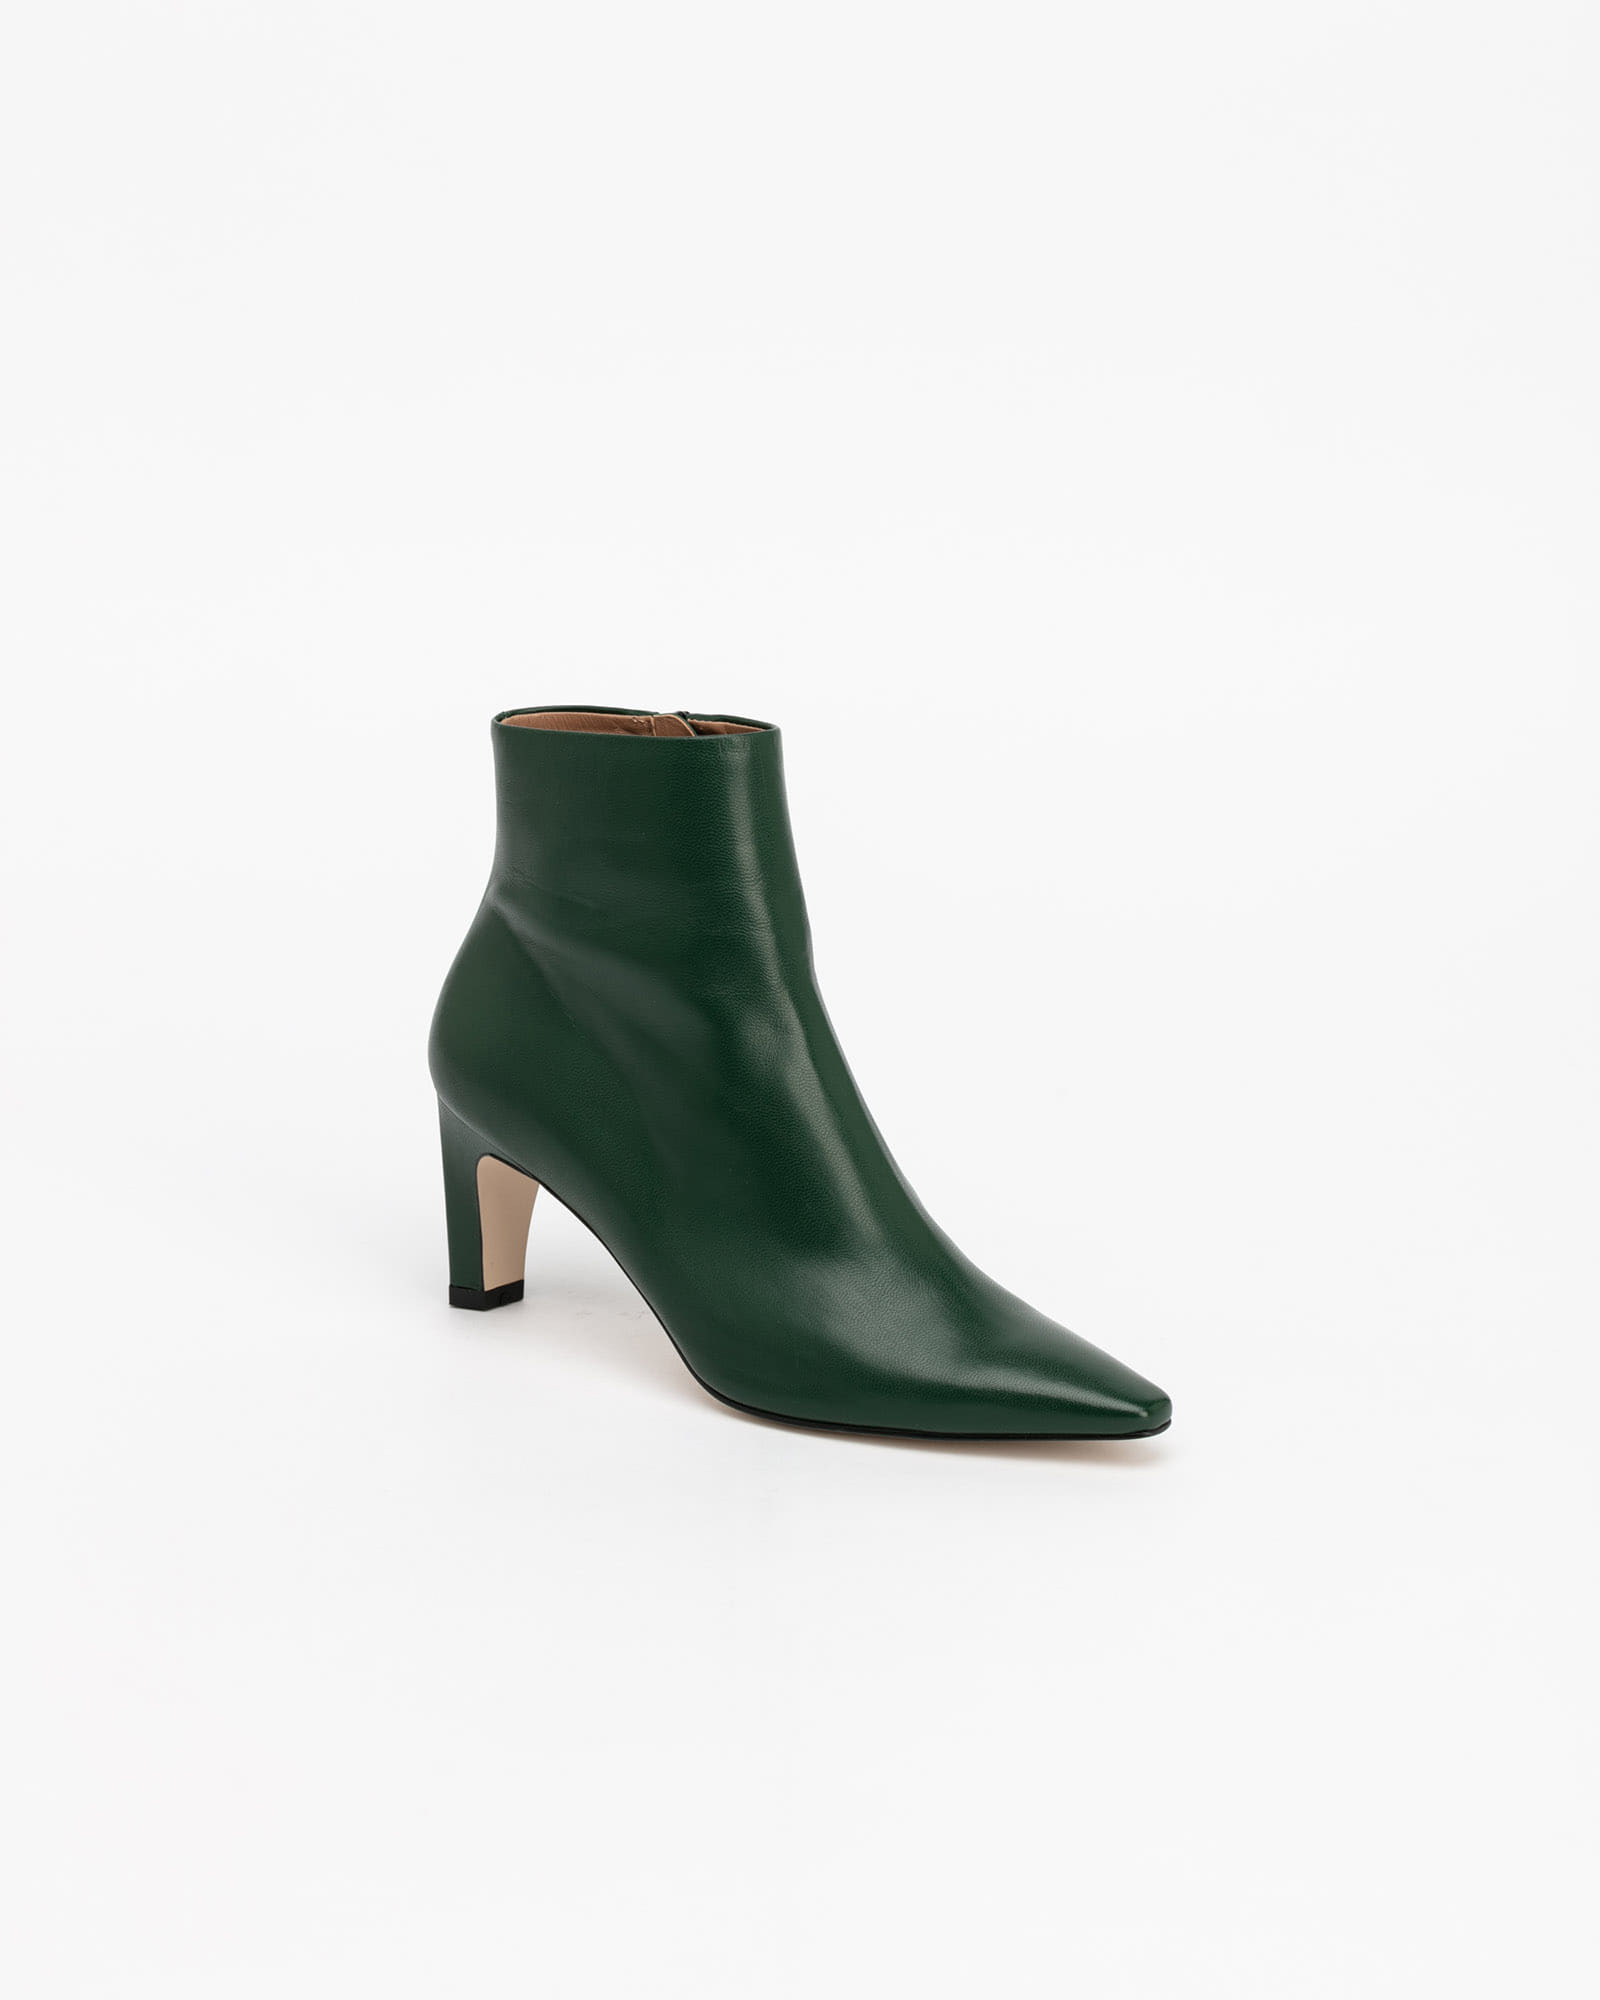 Recon Boots in Forest Green